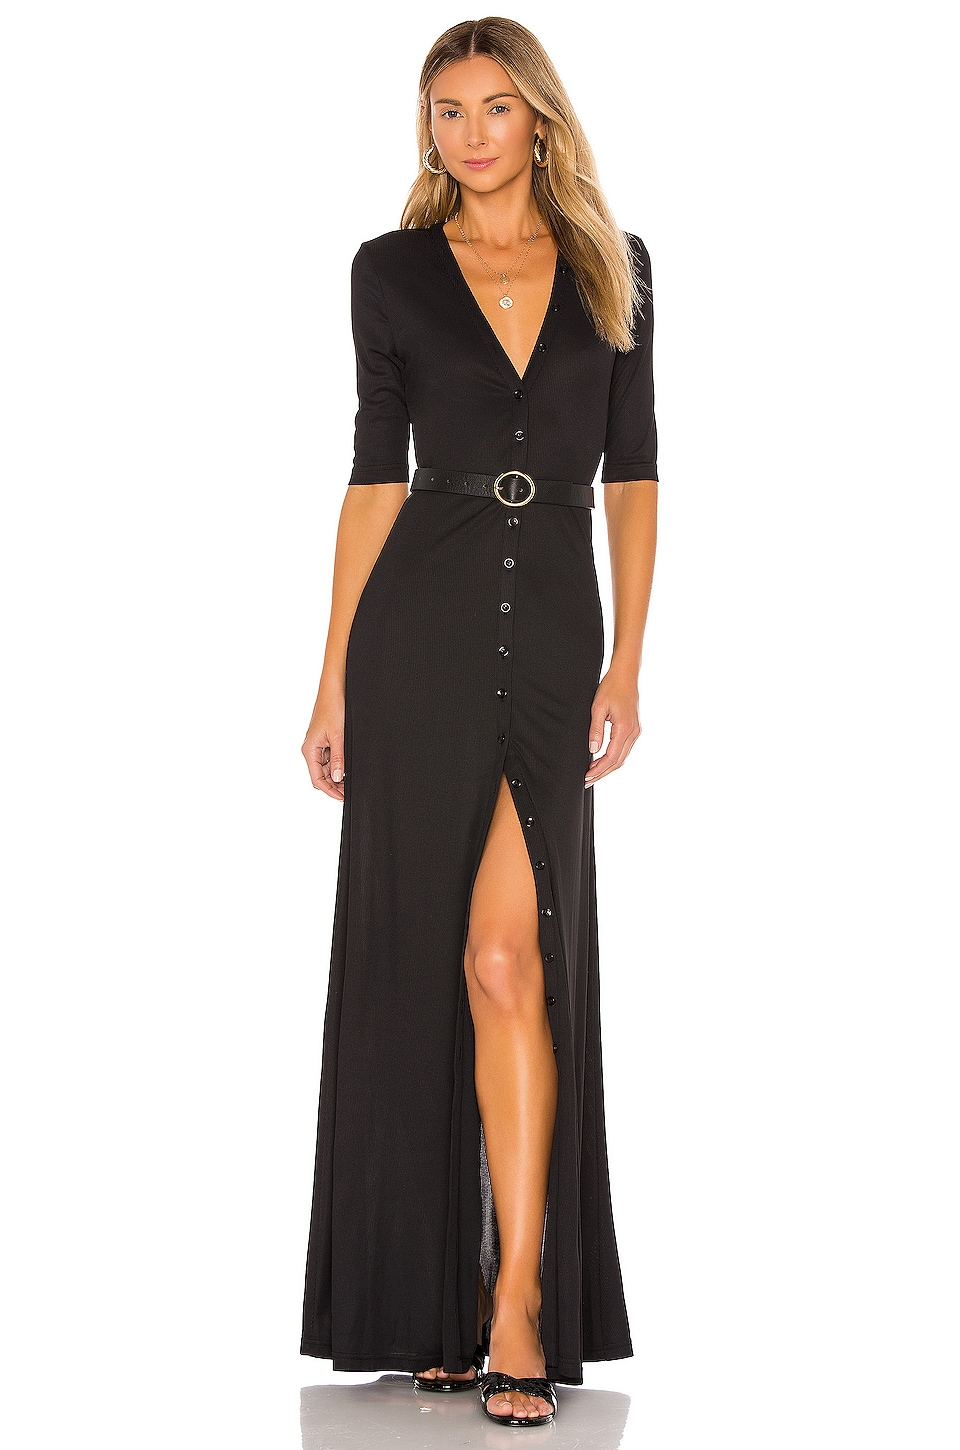 The Esperanza Maxi Dress             L'Academie                                                                                                       CA$ 226.98 15